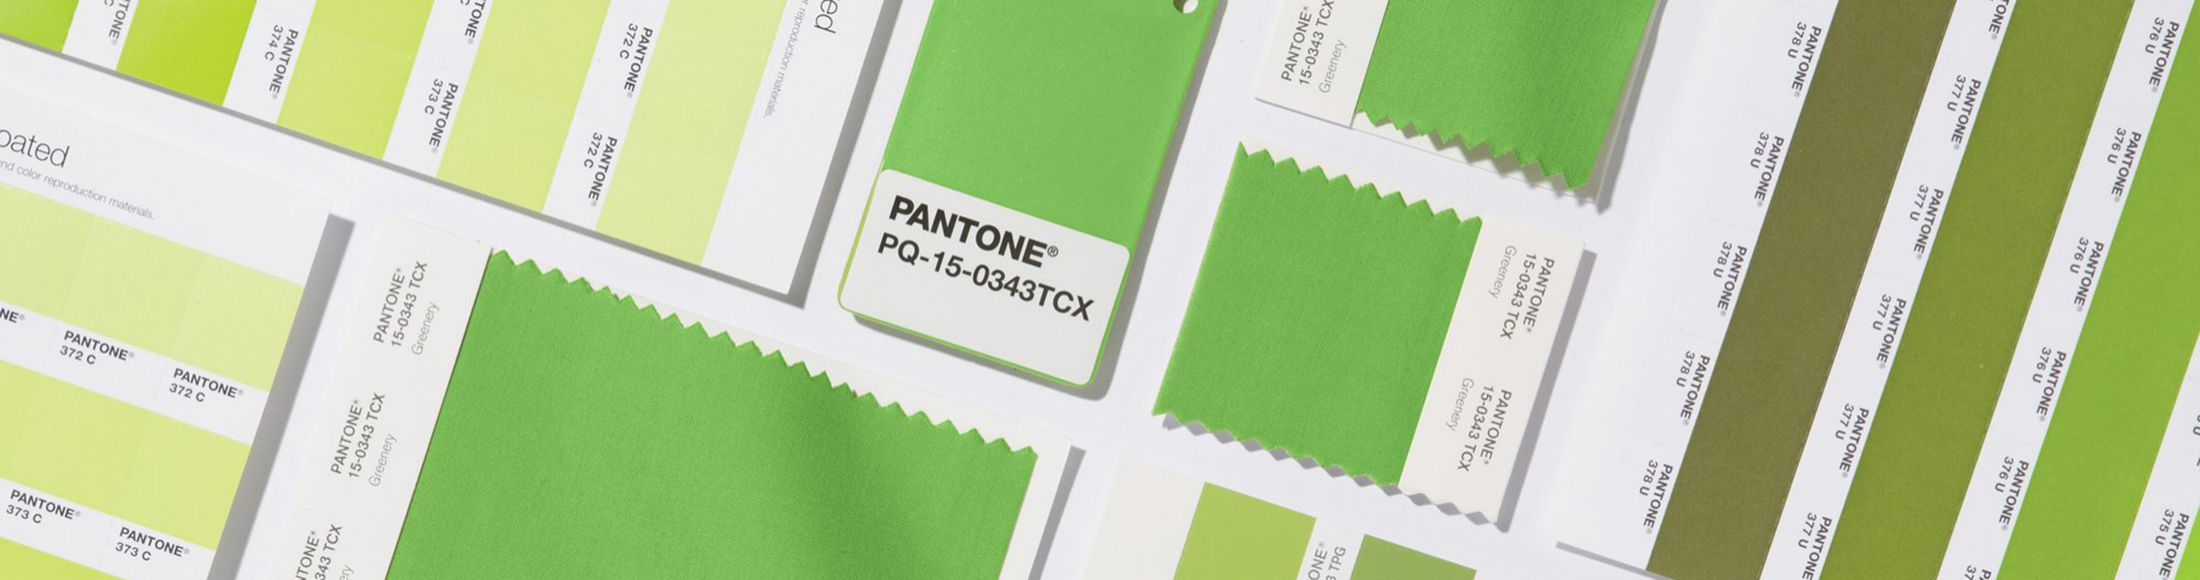 Go Green: How to Wear the Pantone Color of 2017